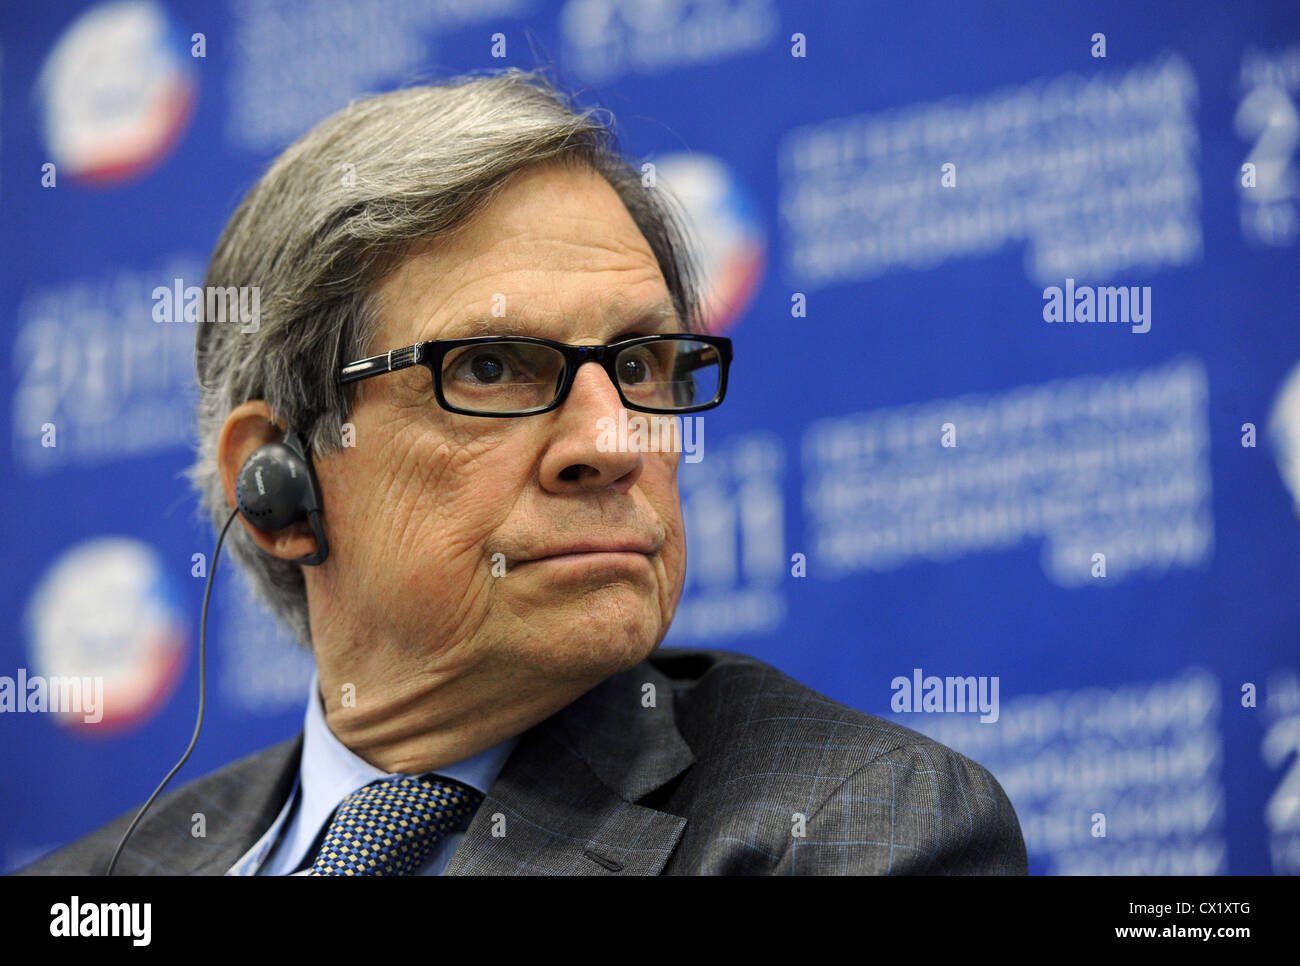 ITAR-TASS: ST. PETERSBURG, RUSSIA. JUNE 17, 2011. Peter T. Grauer, Chairman of Bloomberg L.P., takes part in the - Stock Image